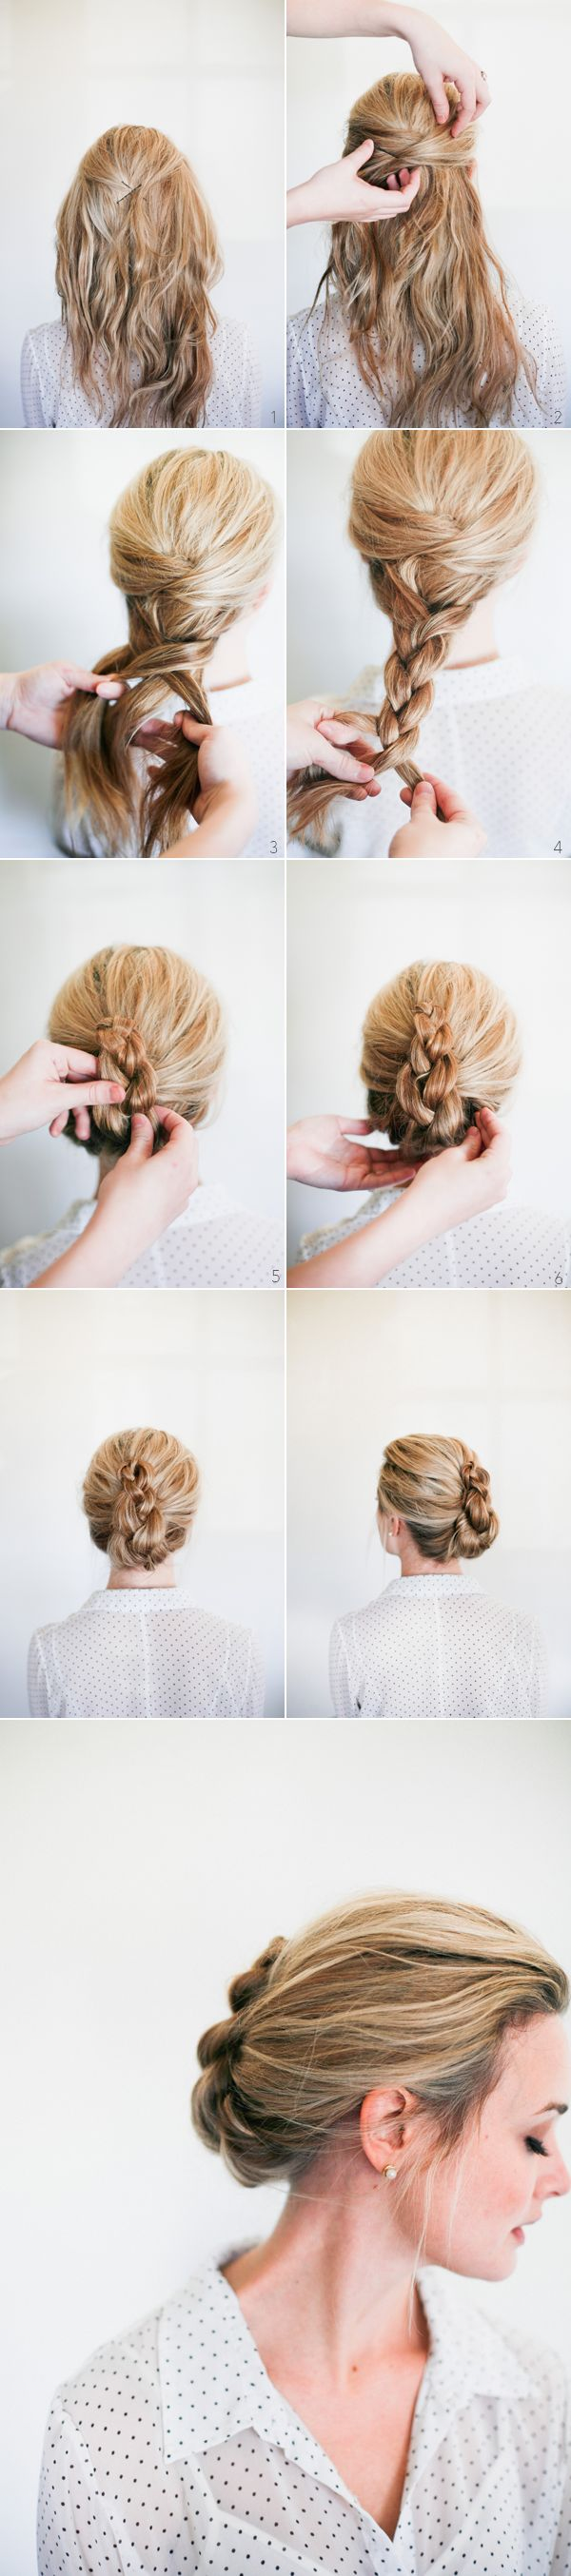 Want more wedding hair inspiration? Click here - http://dropdeadgorgeousdaily.com/2013/11/bell-ball-10-bridal-hair-pieces-dress-tresses/